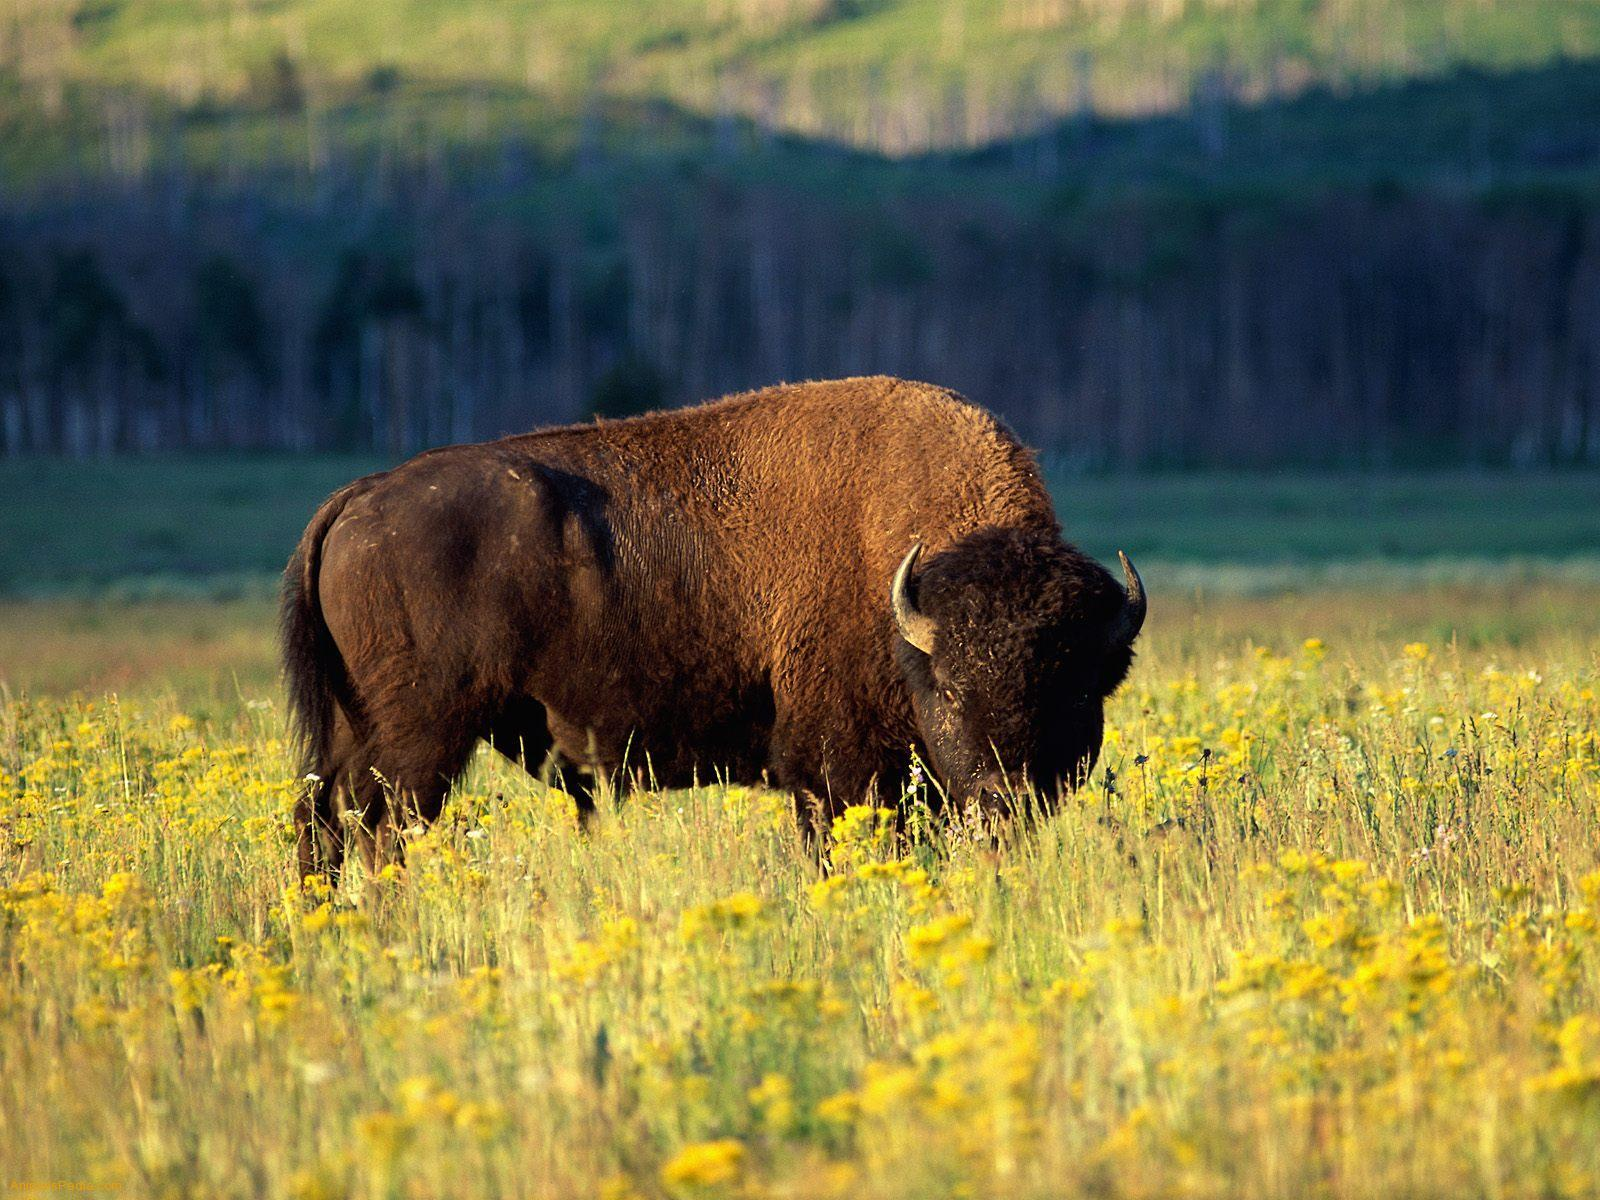 Bison Wallpapers 30863 1600x1200 px ~ HDWallSource